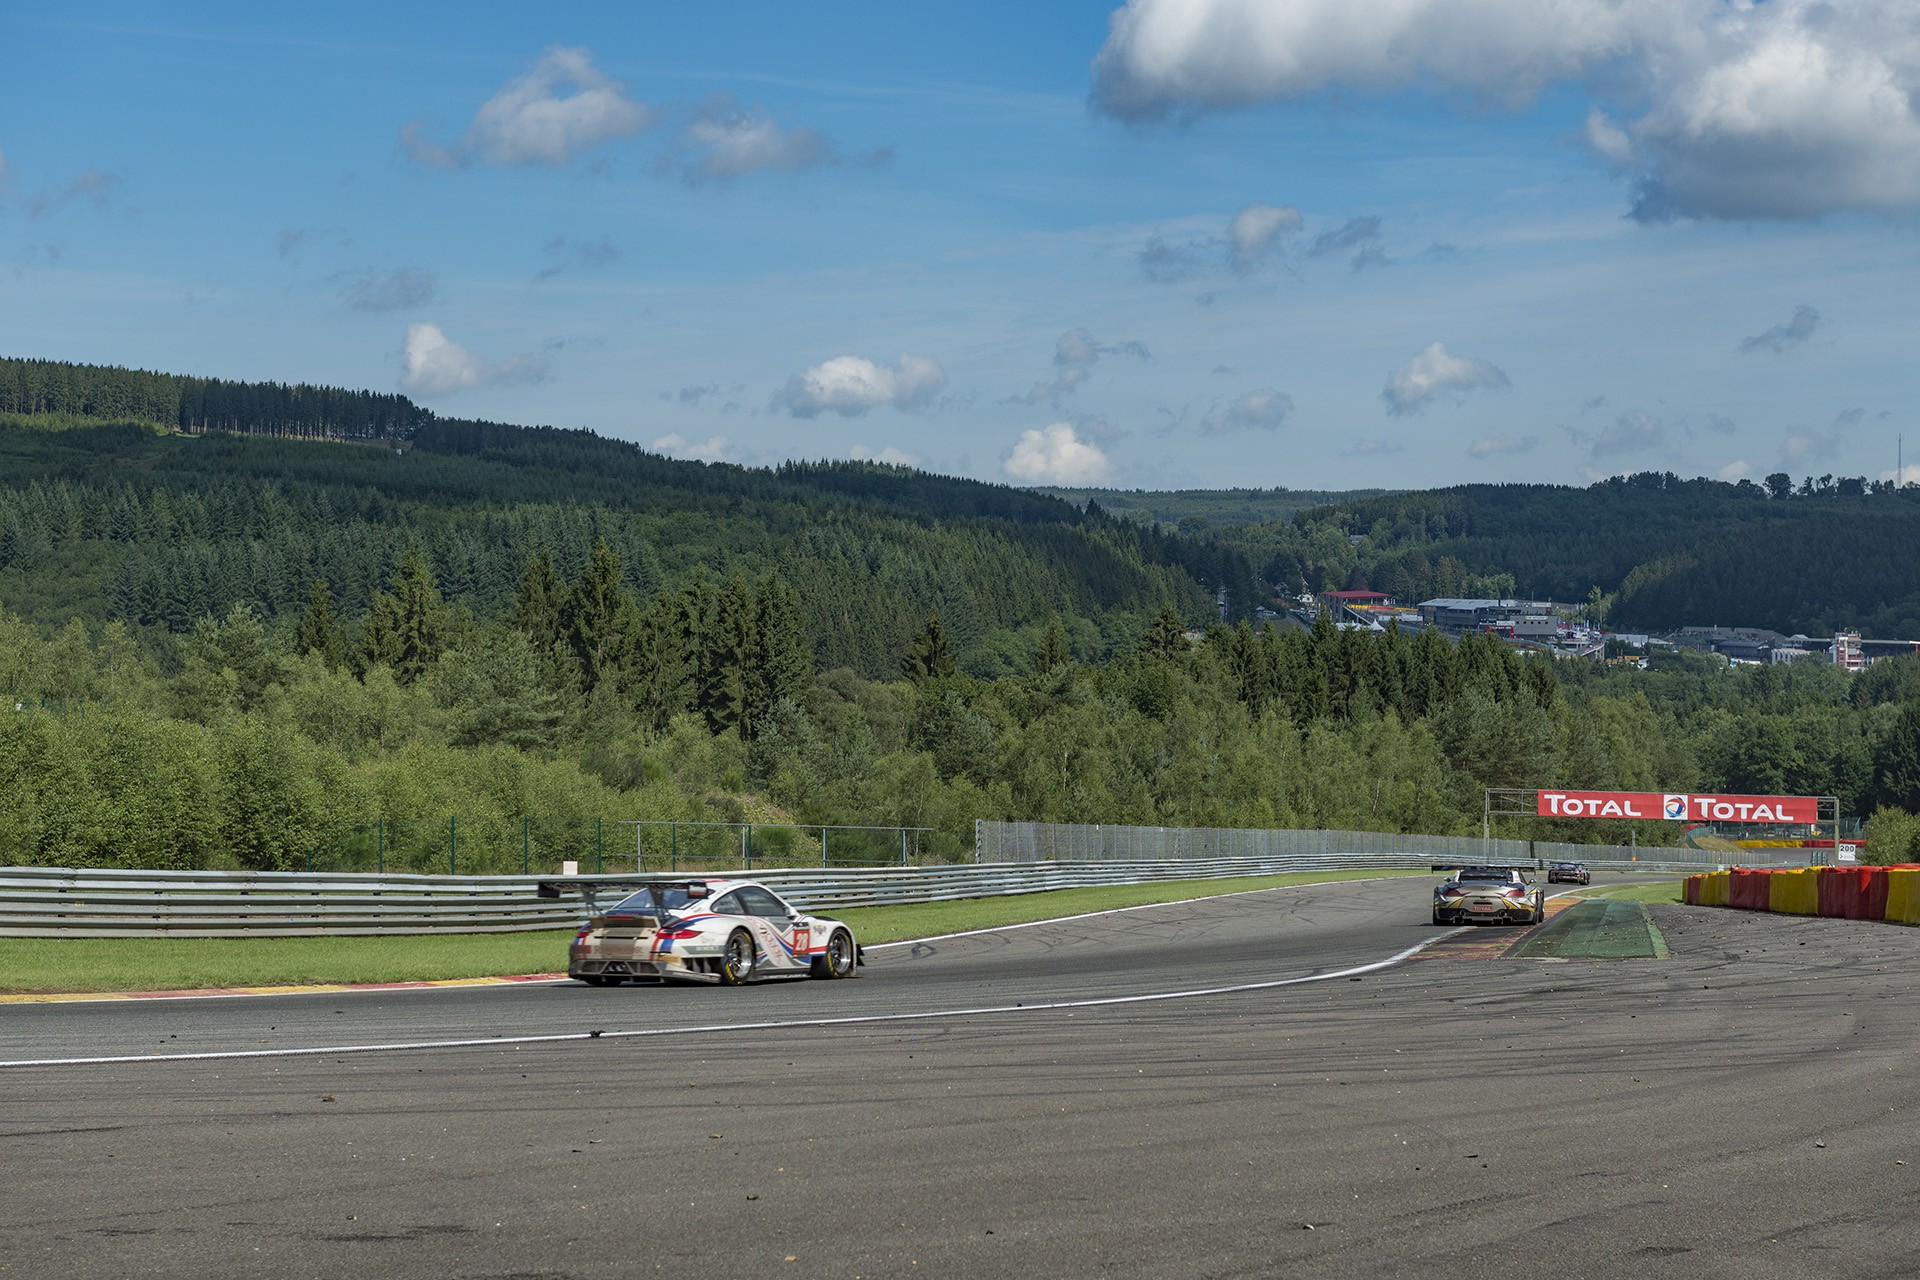 Circuit de Spa-Francorchamps - Total 24H